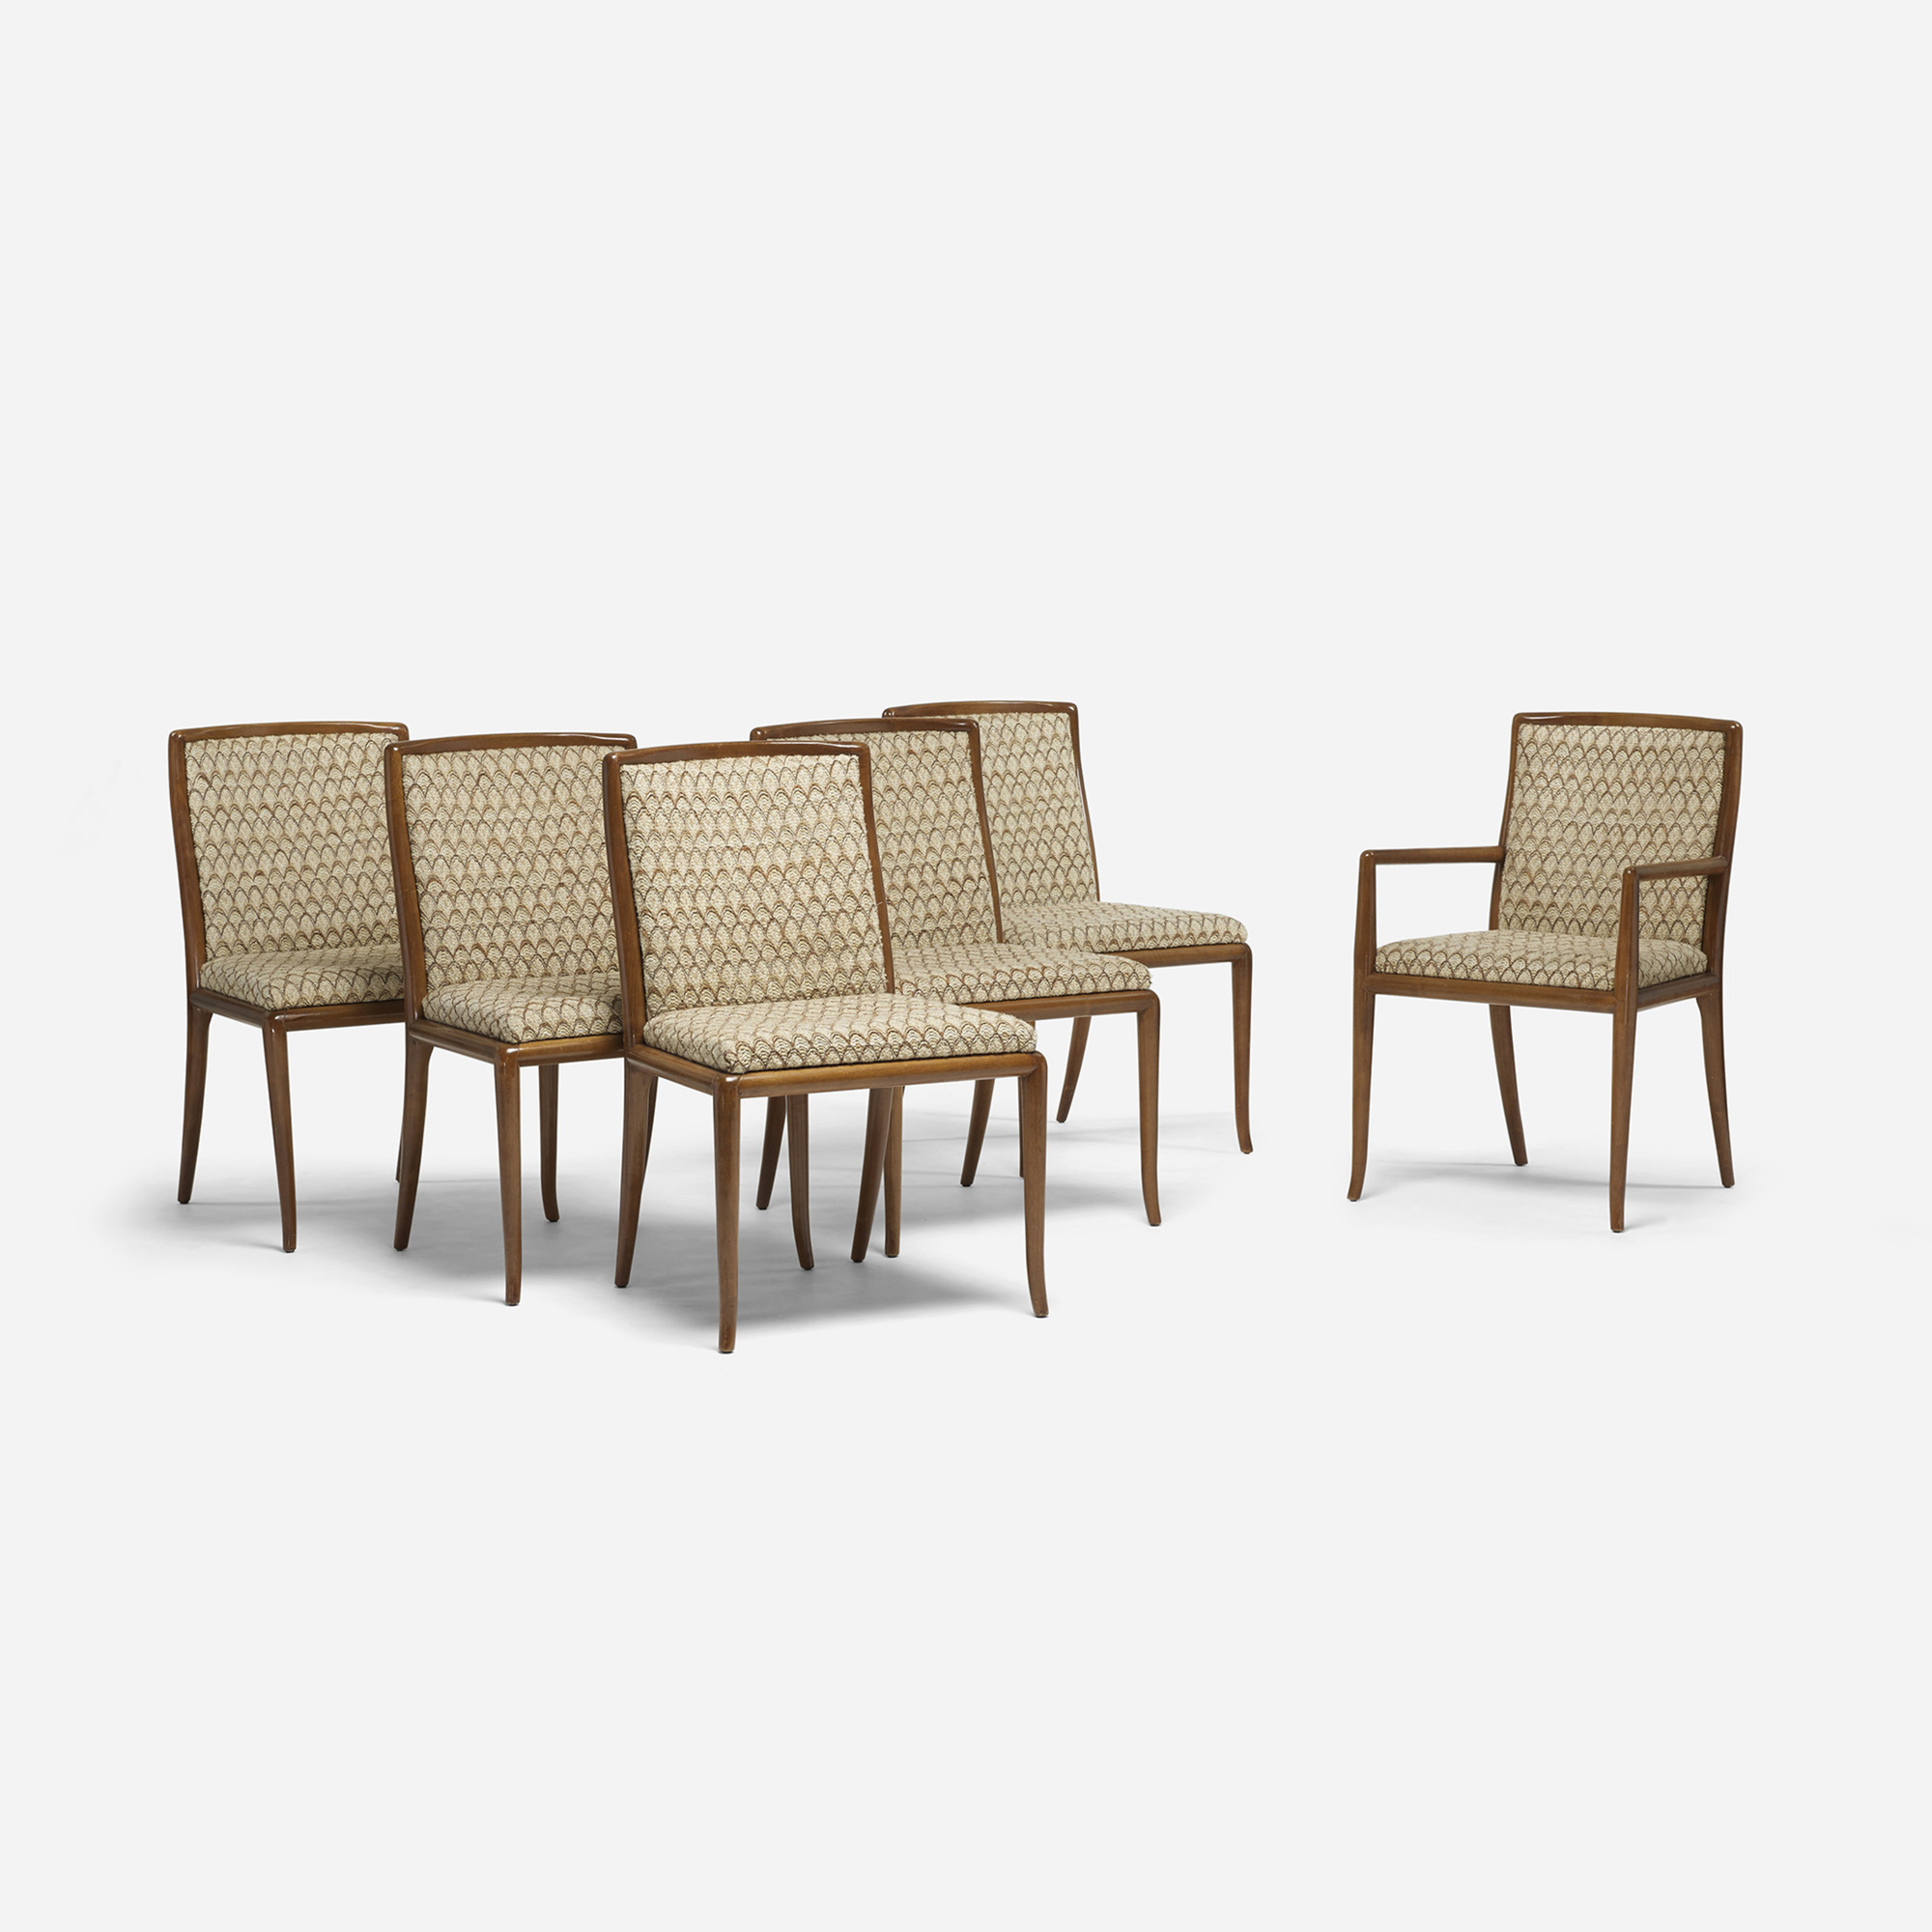 685: T.H. Robsjohn-Gibbings / dining chairs, set of six (1 of 4)